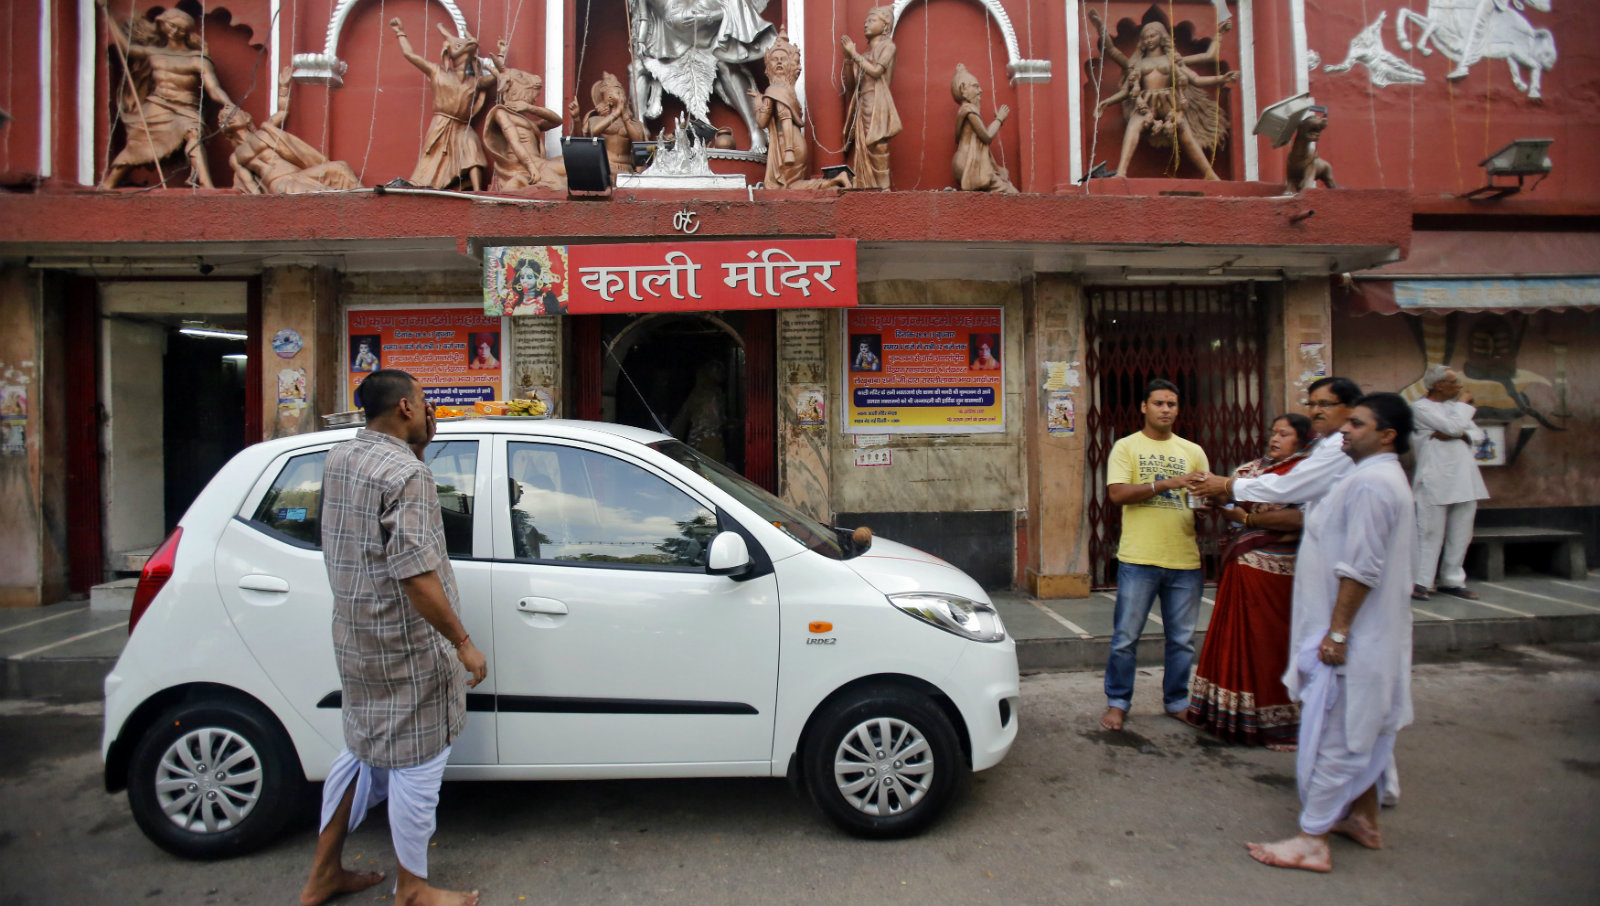 A Hindu priest (2nd R) blesses a new car with its owners outside a temple in New Delhi September 2, 2013. The Indian auto sector is down 7.9 percent for the year to date, compared to an average 20.7 percent climb for global auto stocks.